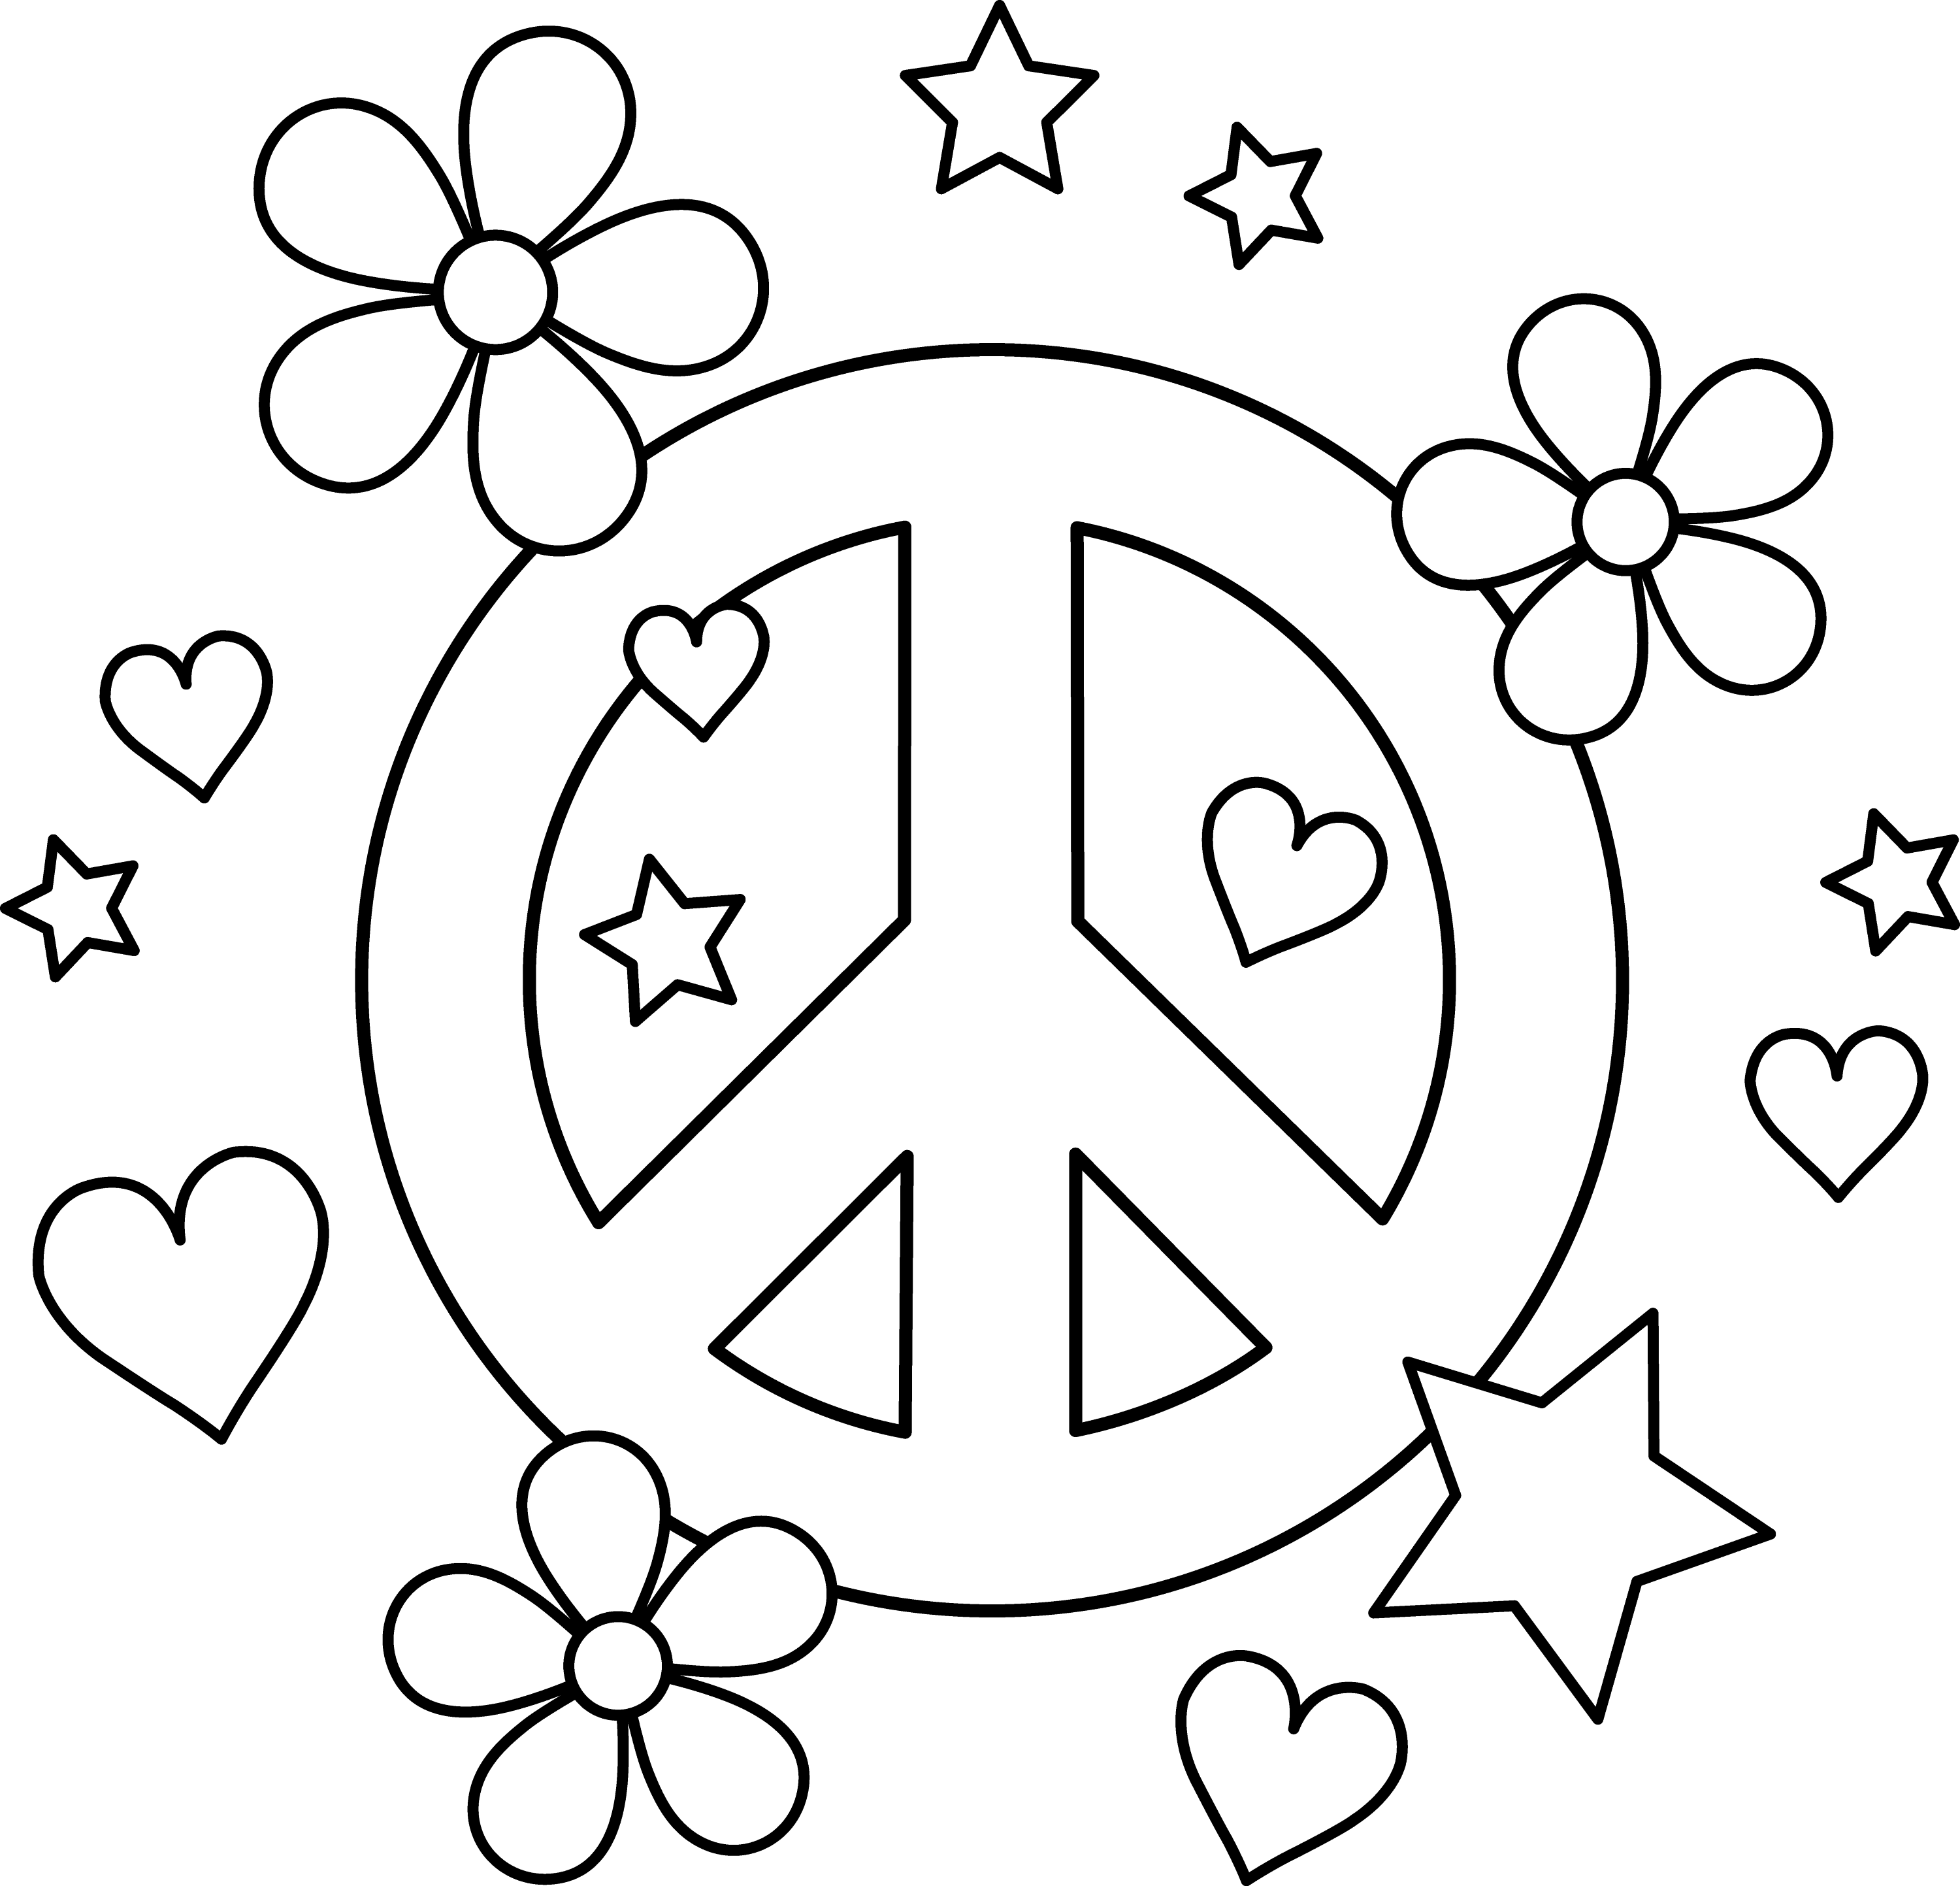 free printable peace sign coloring pages free printable peace sign coloring pages cool2bkids sign free pages coloring printable peace